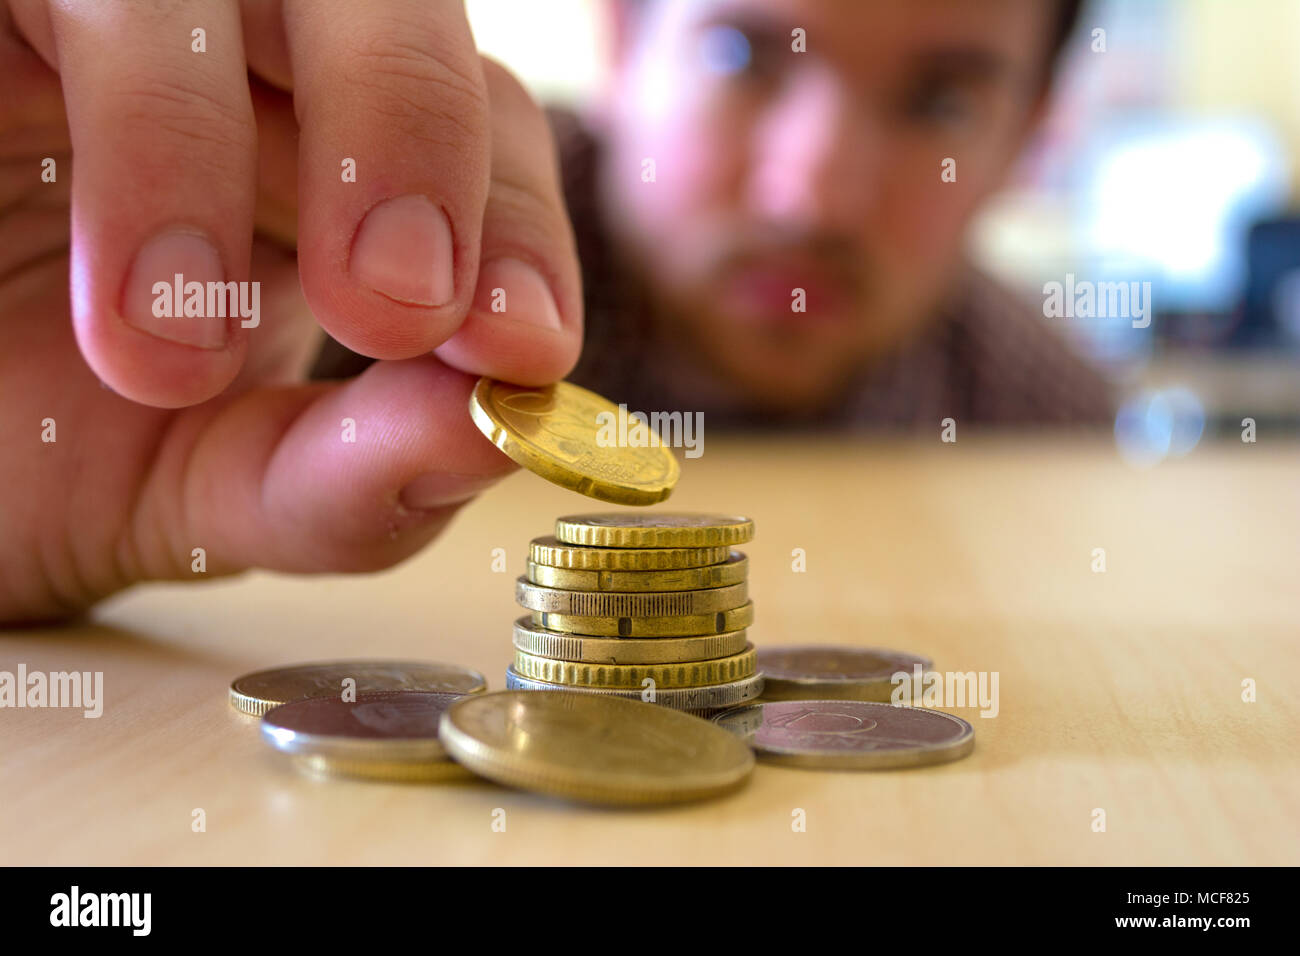 The coins are stacked. The men's hands are gently putting coin on top of the stack. Concept of saving money and growing financially. The new currency  - Stock Image